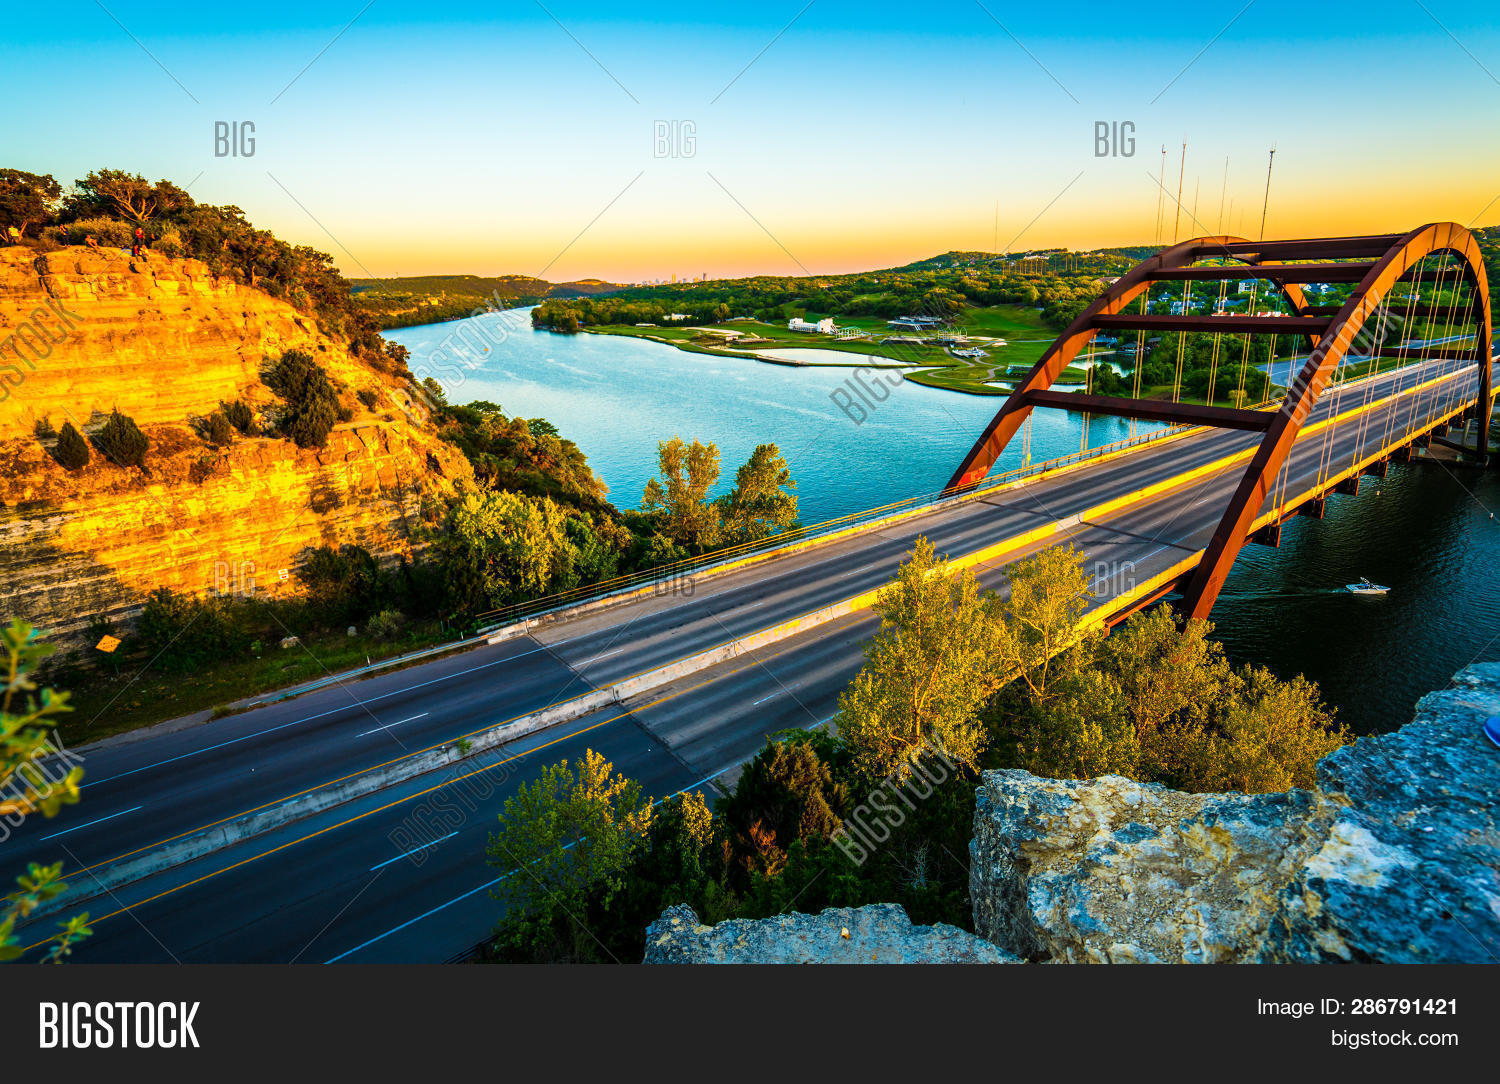 360,Austin,Colorado,Lake,Pennybacker,River,Skyline,Texas,Town,USA,a,across,at,background,bridge,cannon,colorful,gorgeous,in,landmark,of,or,spanning,summer,sunset,suspension,the,with